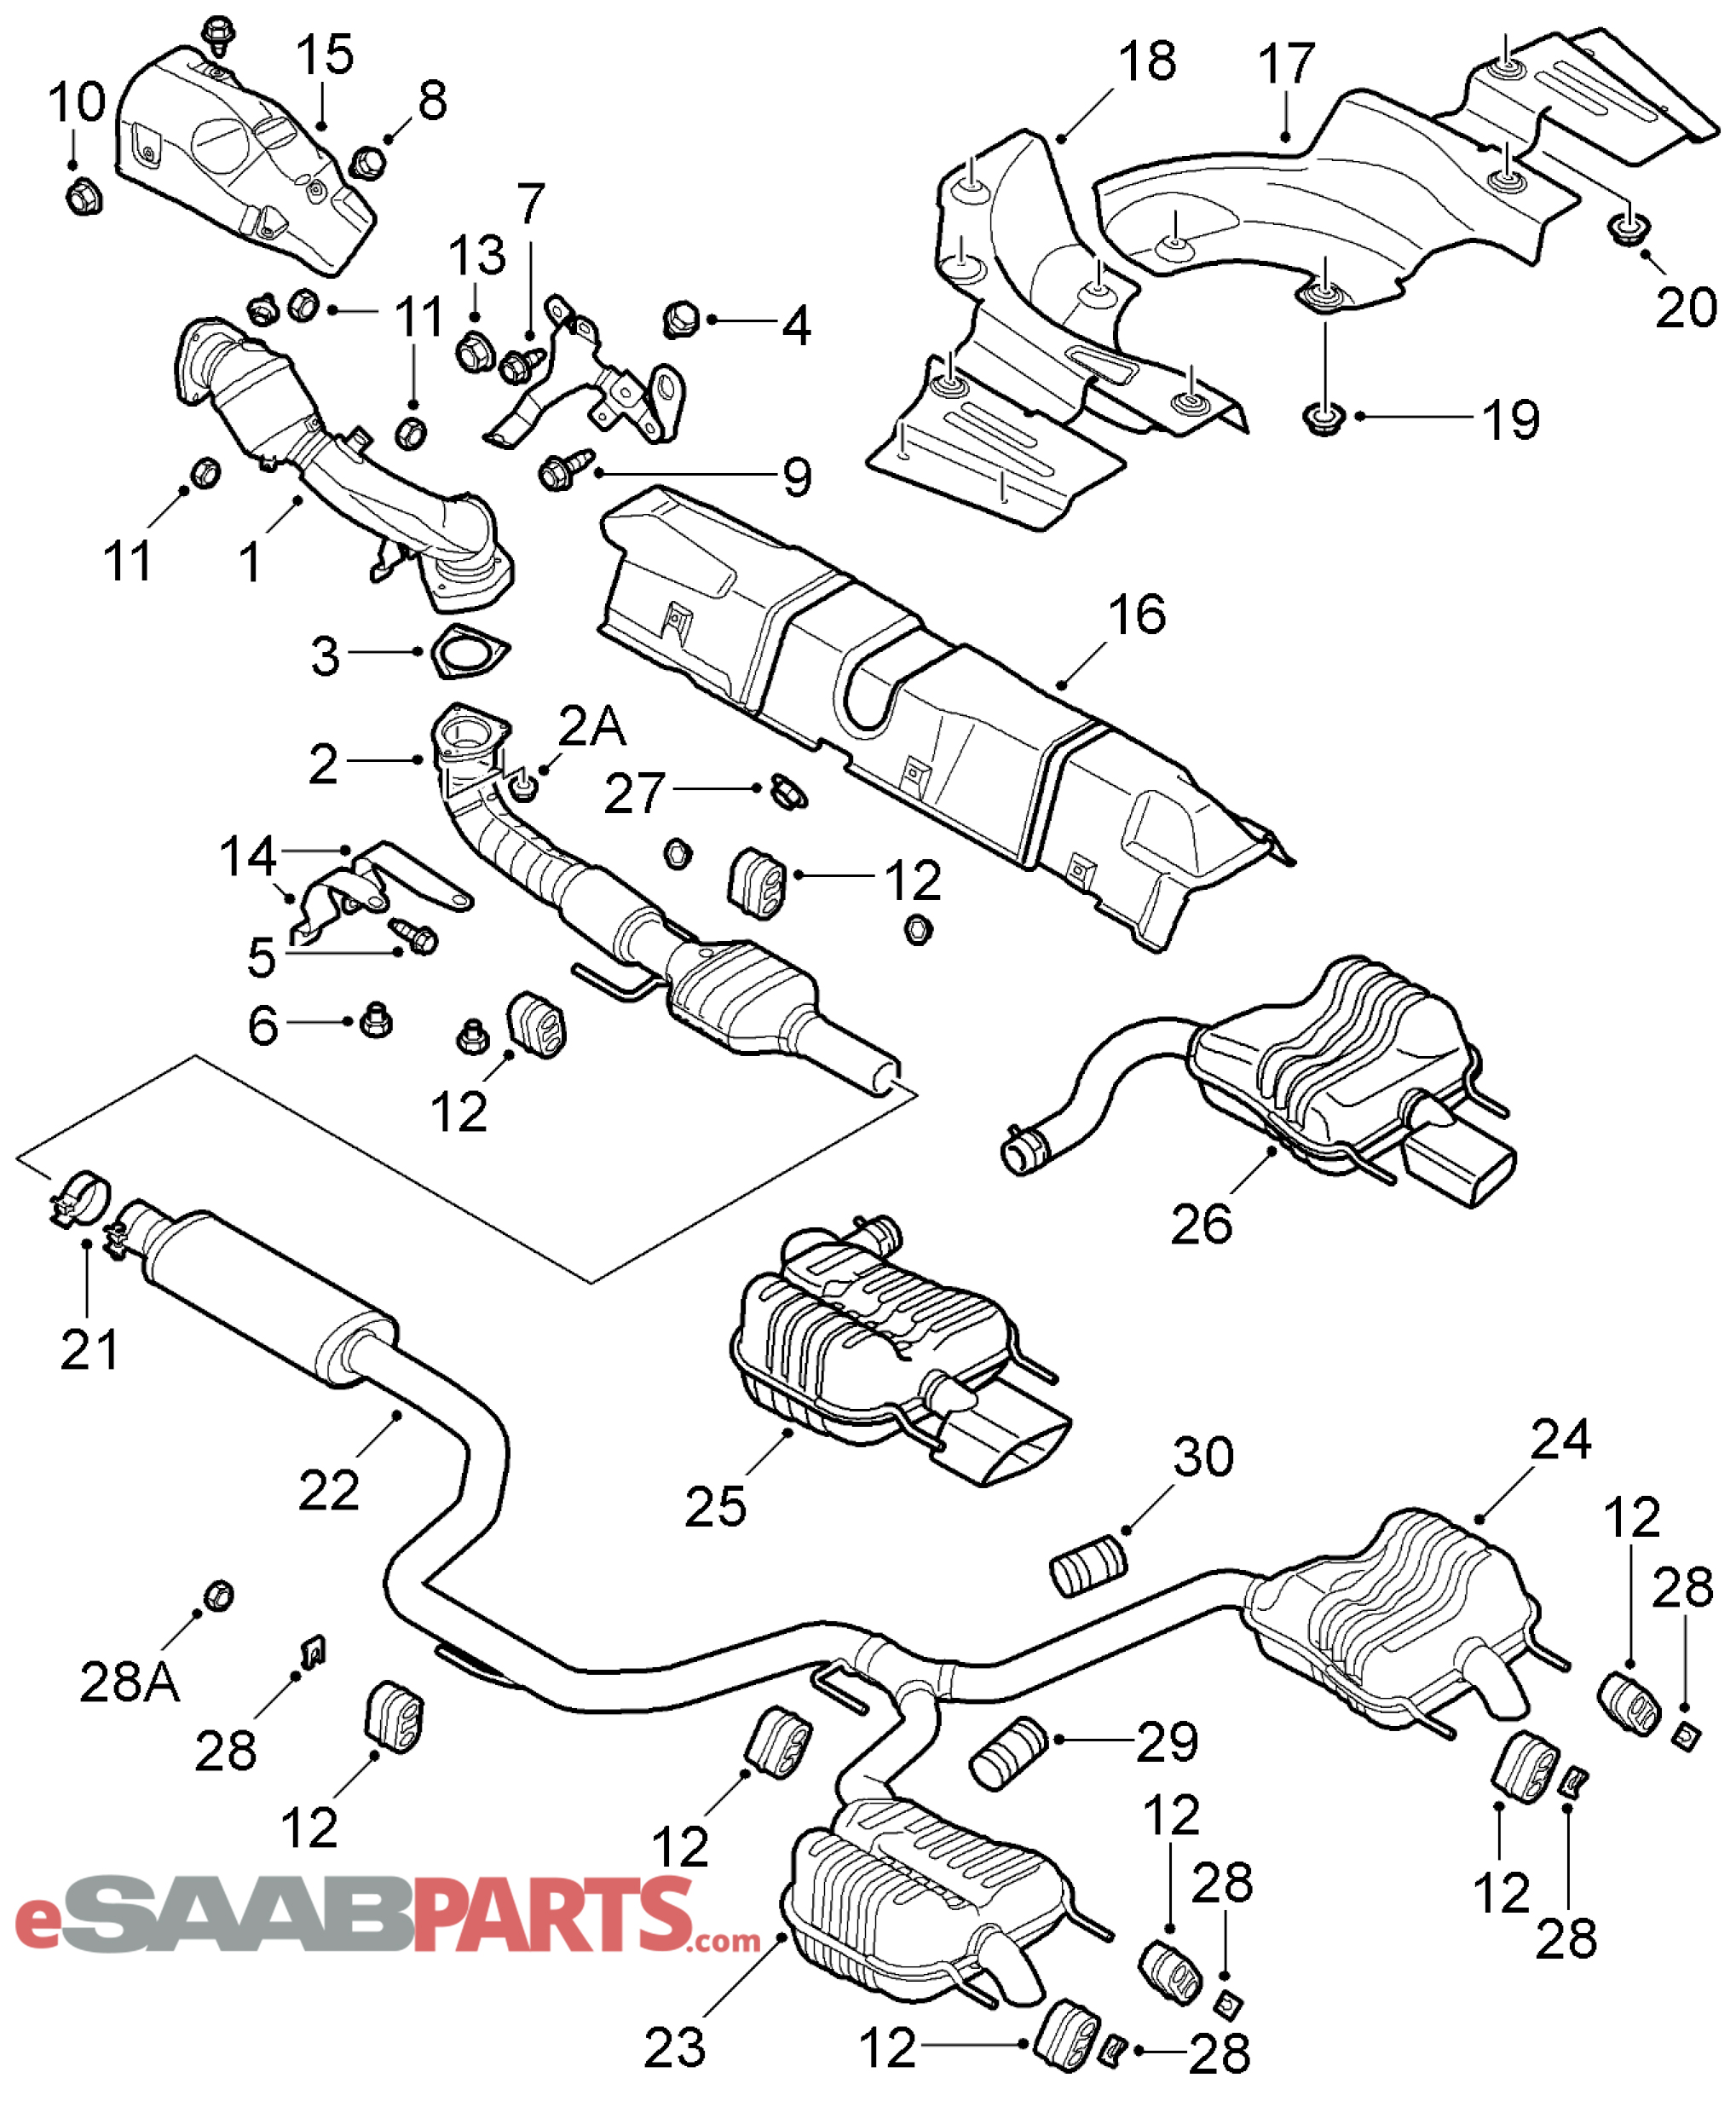 Saab 9 3 Engine Diagram Exhaust Completed Wiring Diagrams Esaabparts Com 9440 U003e Parts System